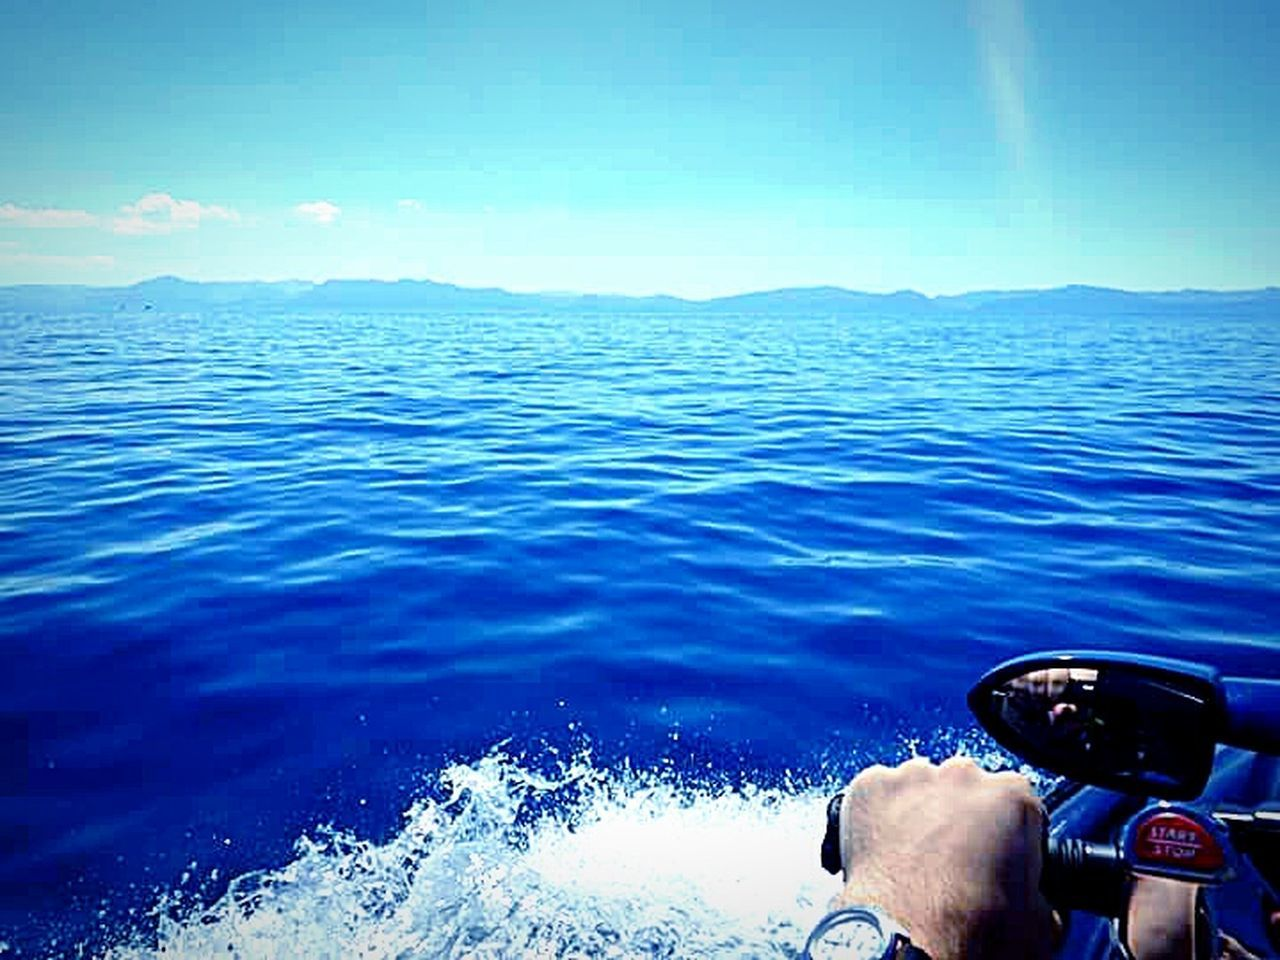 The Essence Of Summer Lake Tahoe Water Sports Mountains And Sky Sierra Nevada Mountains My Happy Place  Jet Skiing Water Sports My Son ❤ Waterproof Camera Water Photography Lake Tahoe Taking Photos ❤ Outdoor Photography Clear Blue Water Vacation Time ♡ Having Fun With Kids Water Swimming In The Lake Mother And Son Water Splash